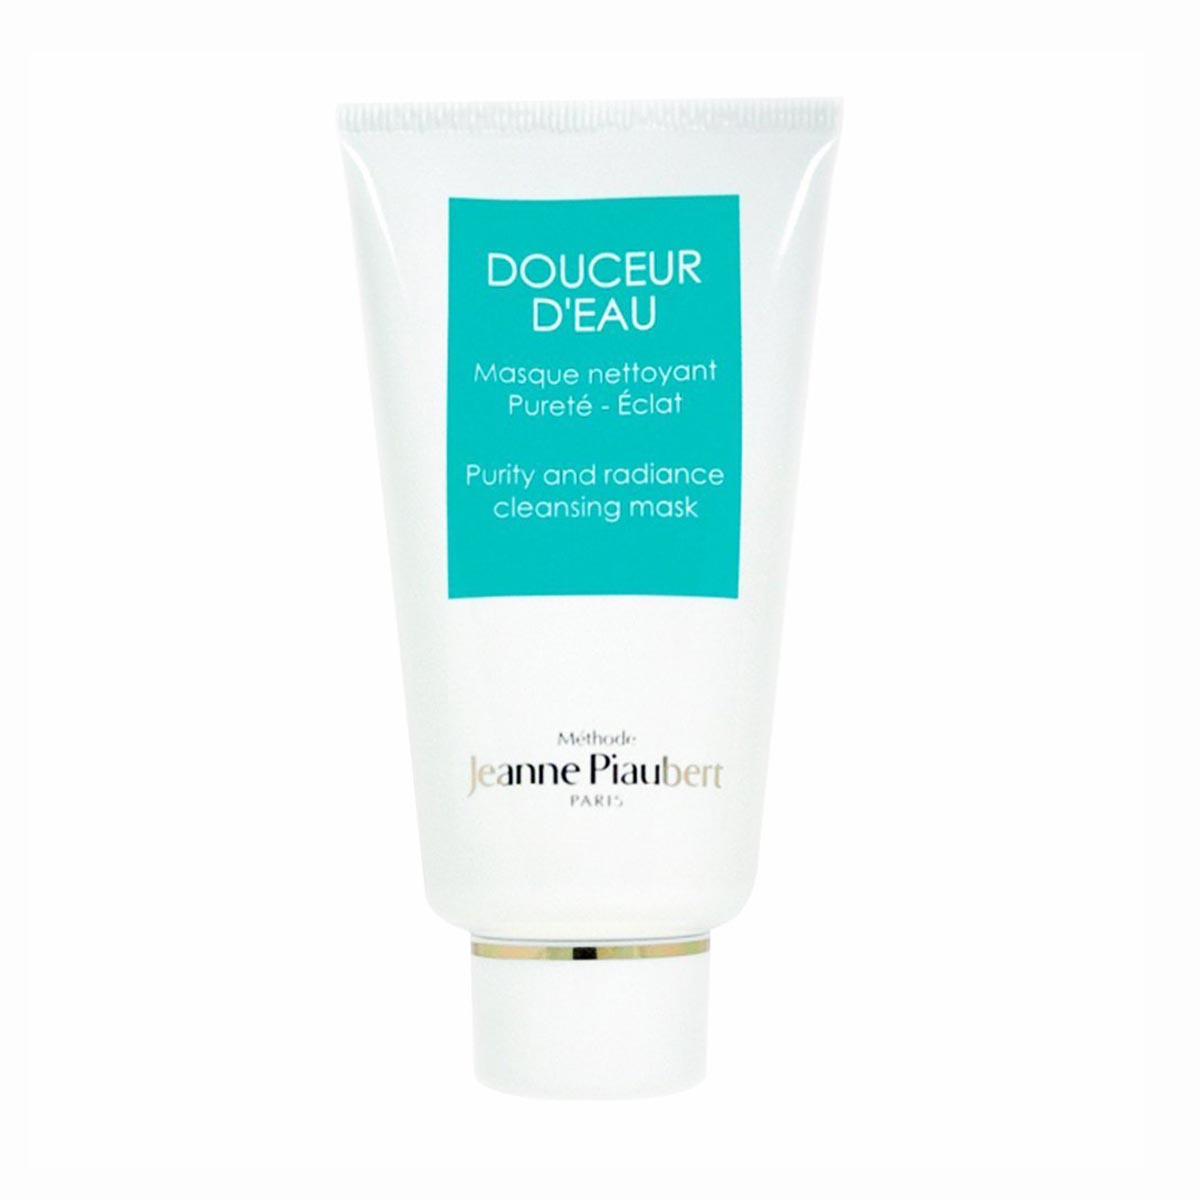 Jeanne piaubert douceur d eau purity and radiance cleansing mask 75ml